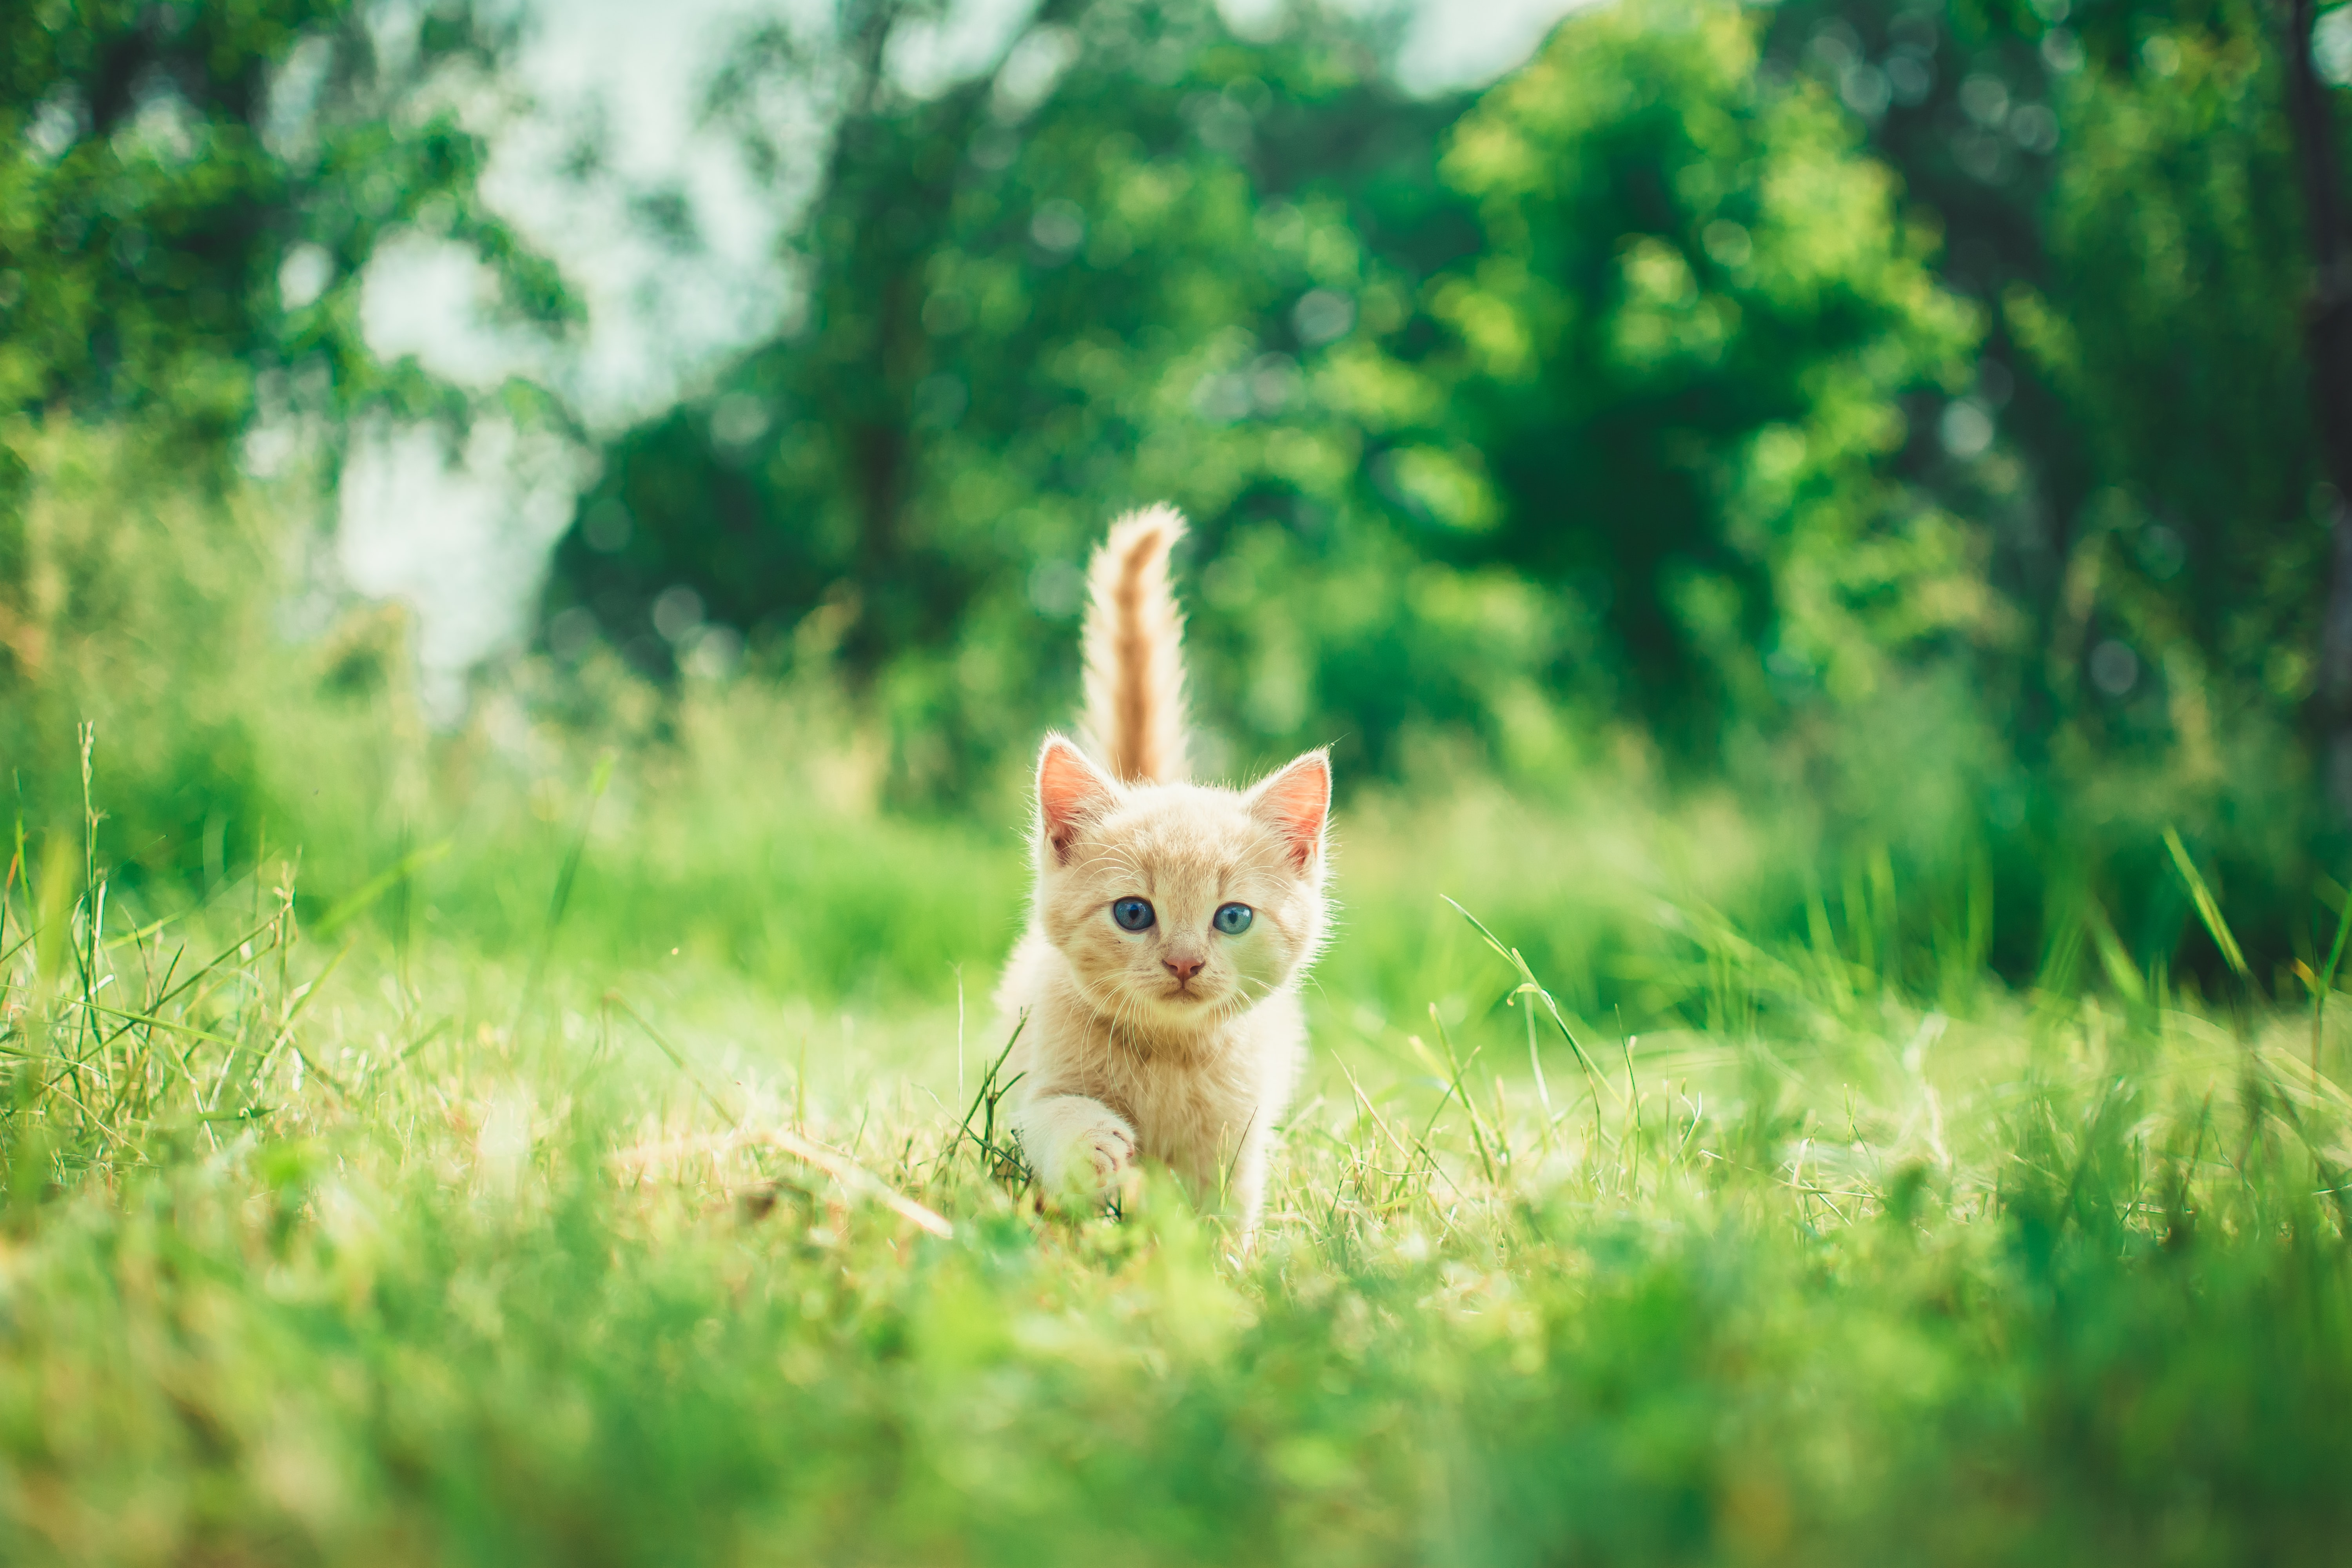 a ginger kitten in the grass